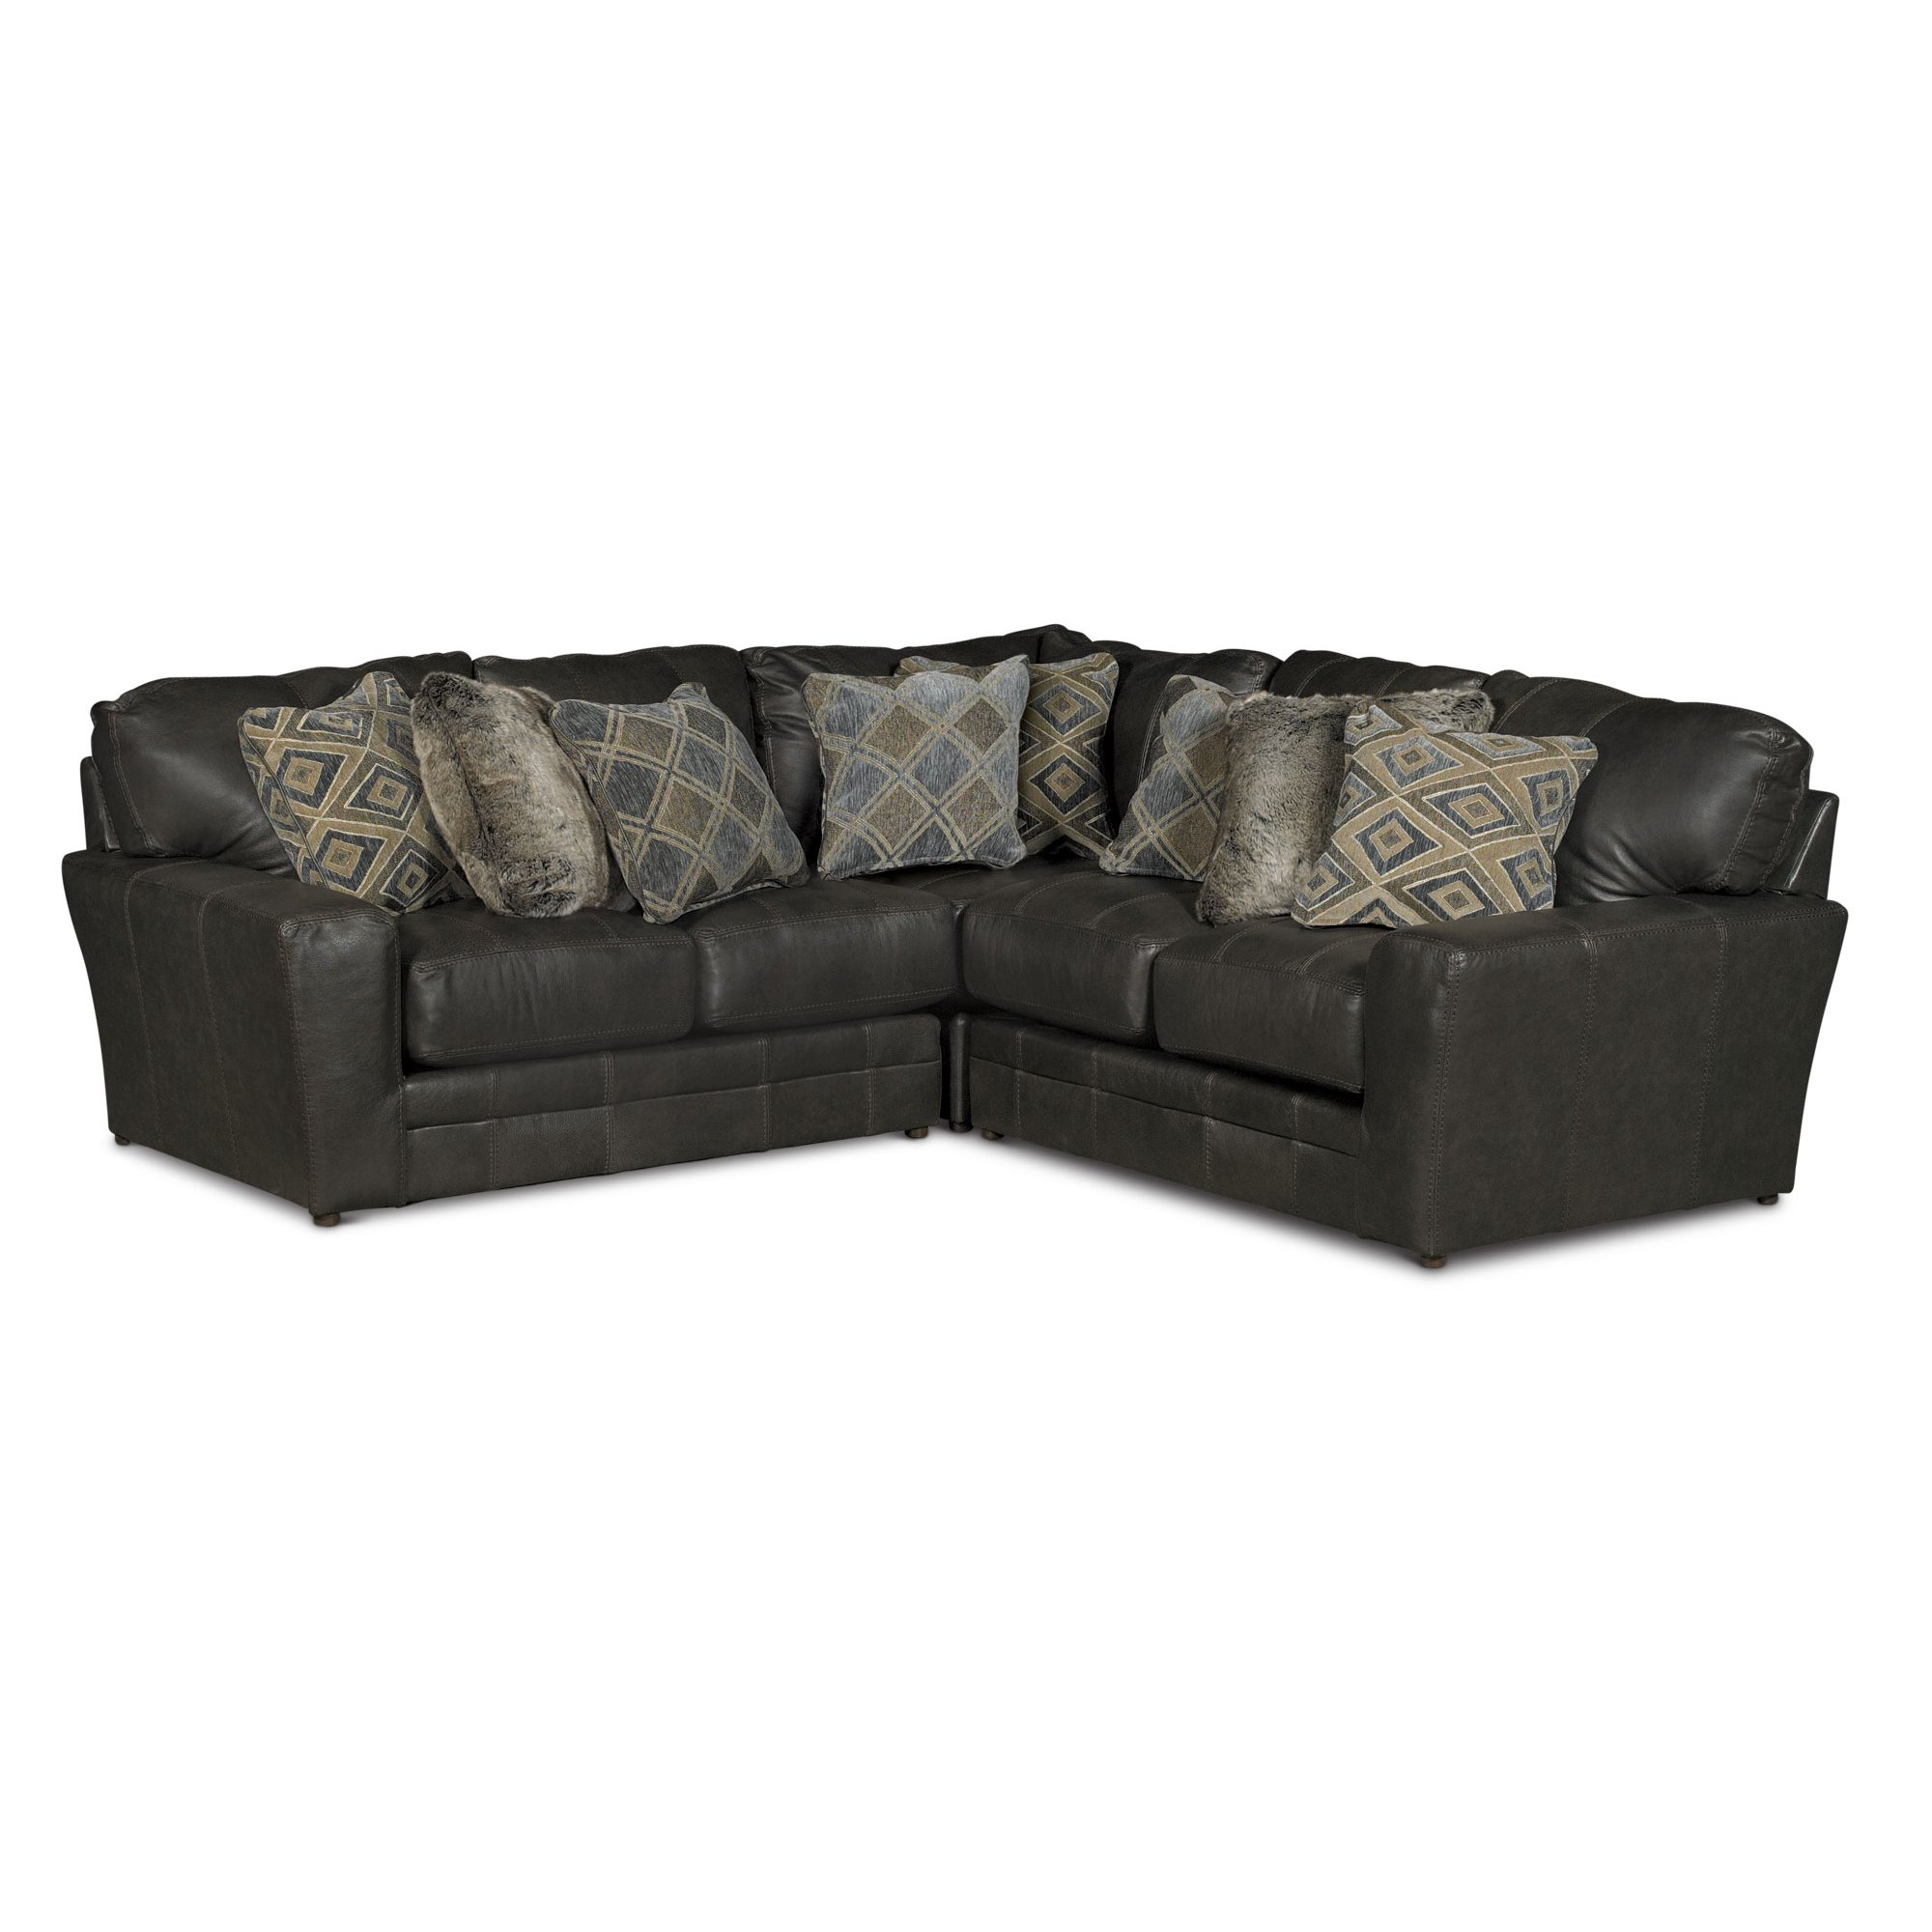 Casual Clic Steel Gray 3 Piece Sectional Sofa Denali Rc Willey Furniture